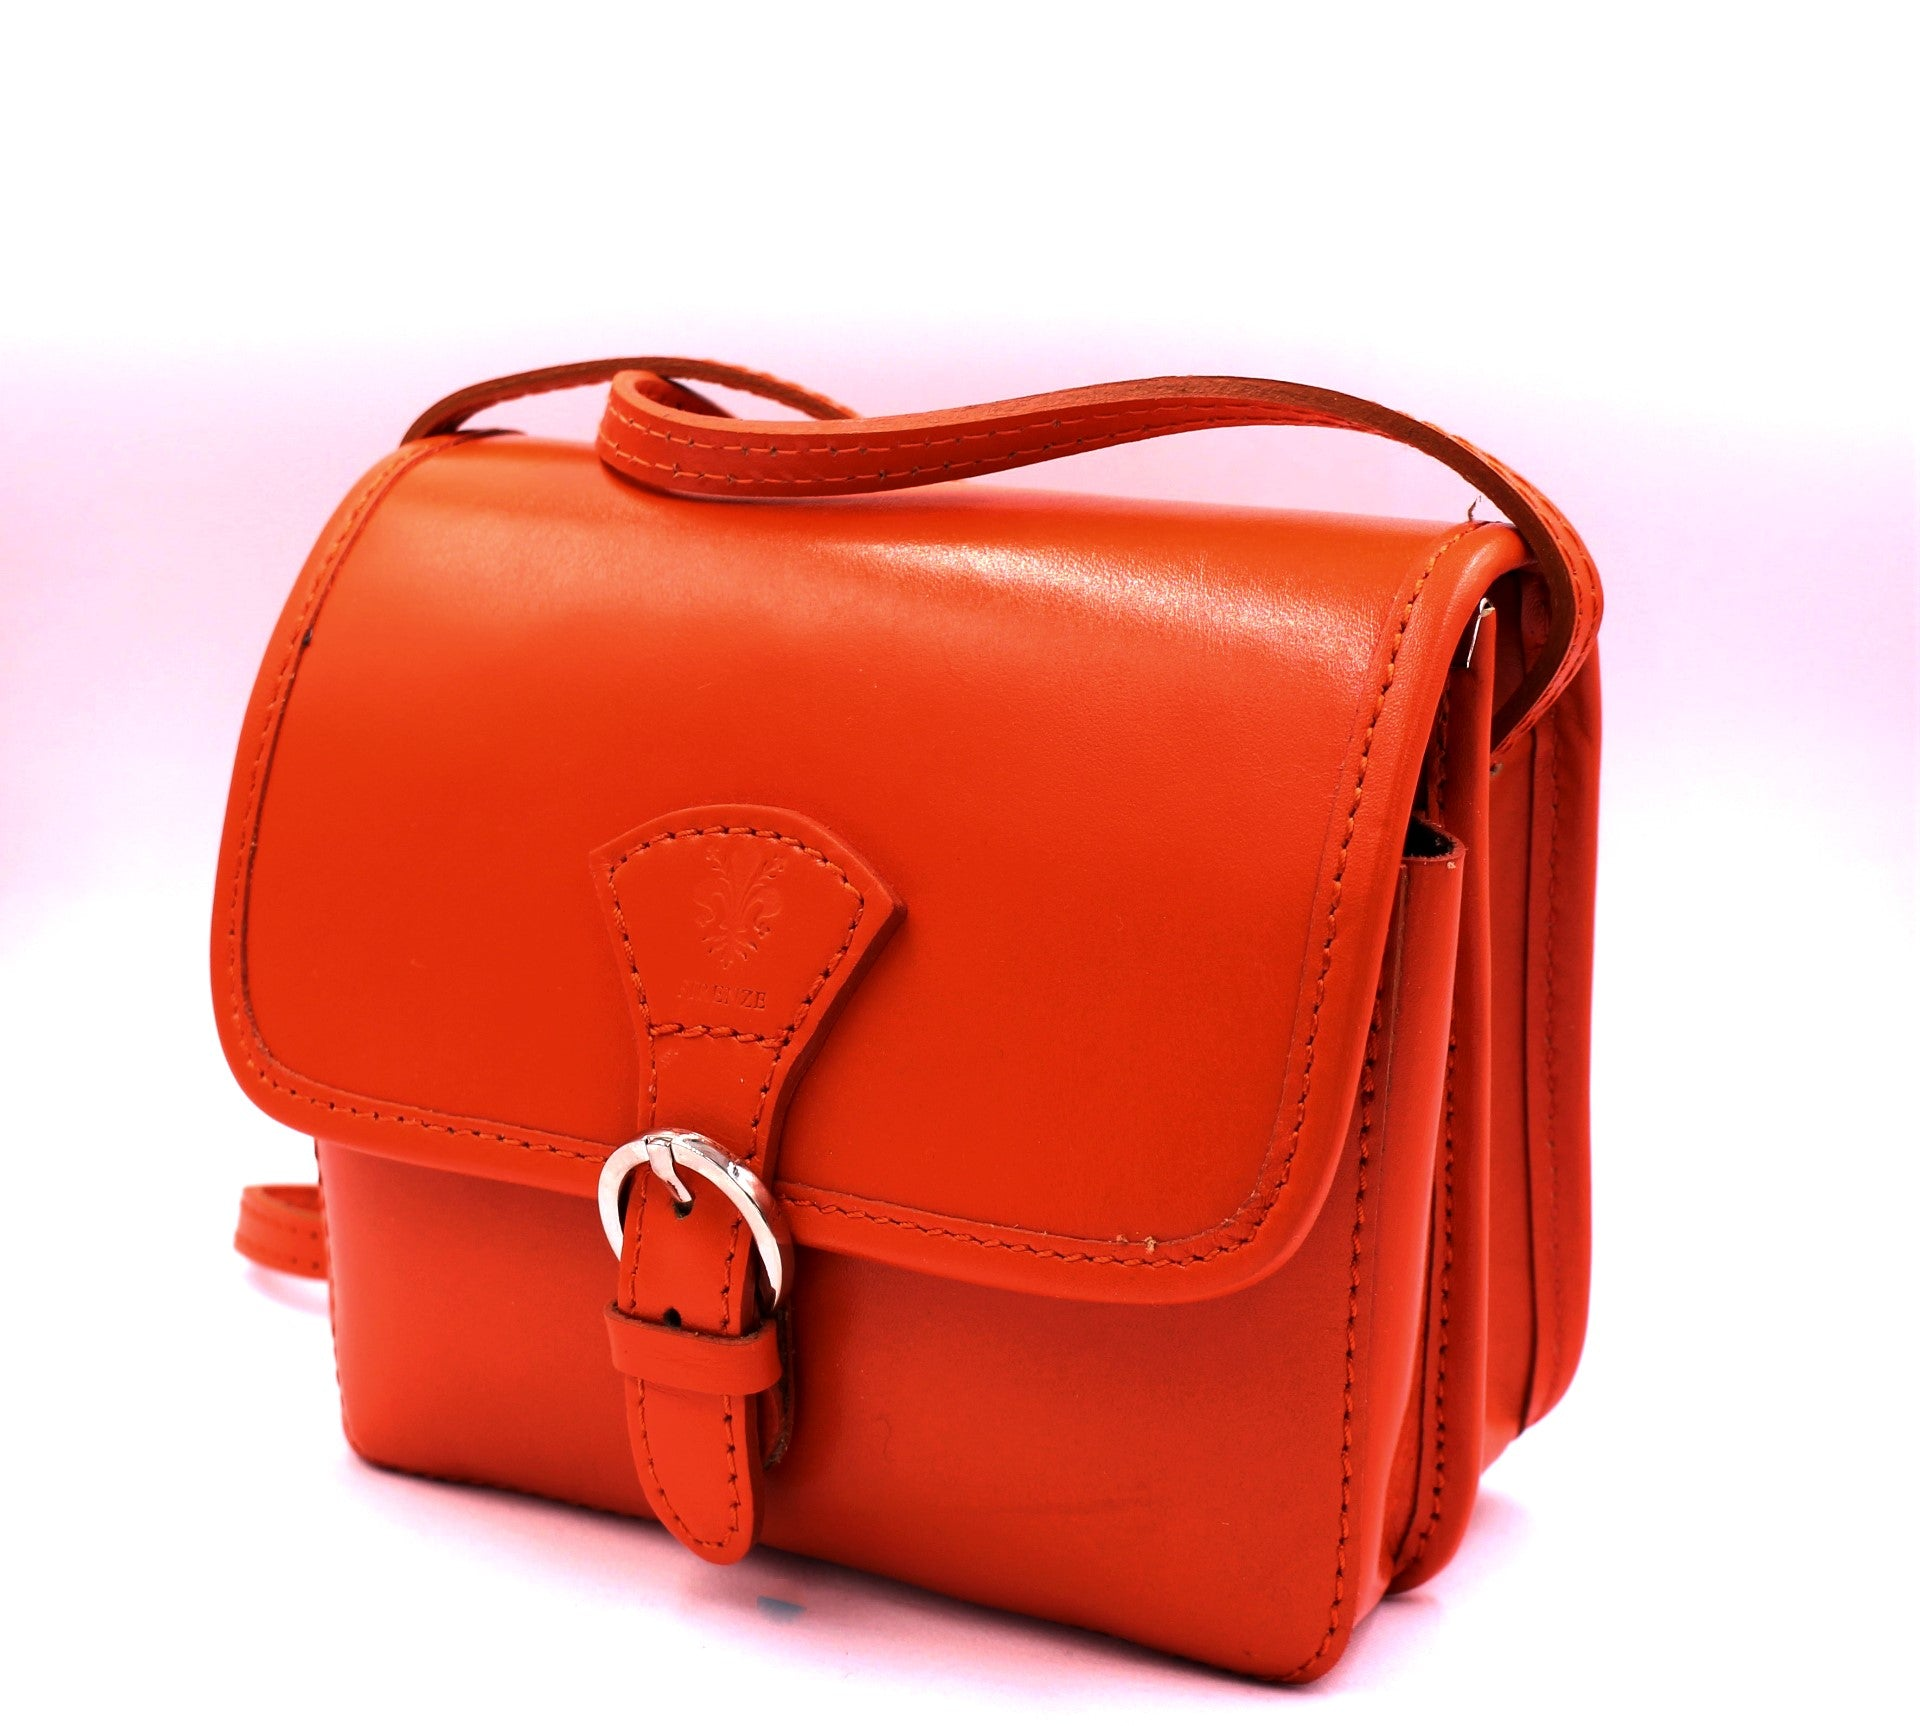 Arancia Leather Crossbody Bag - Bridges to Borders